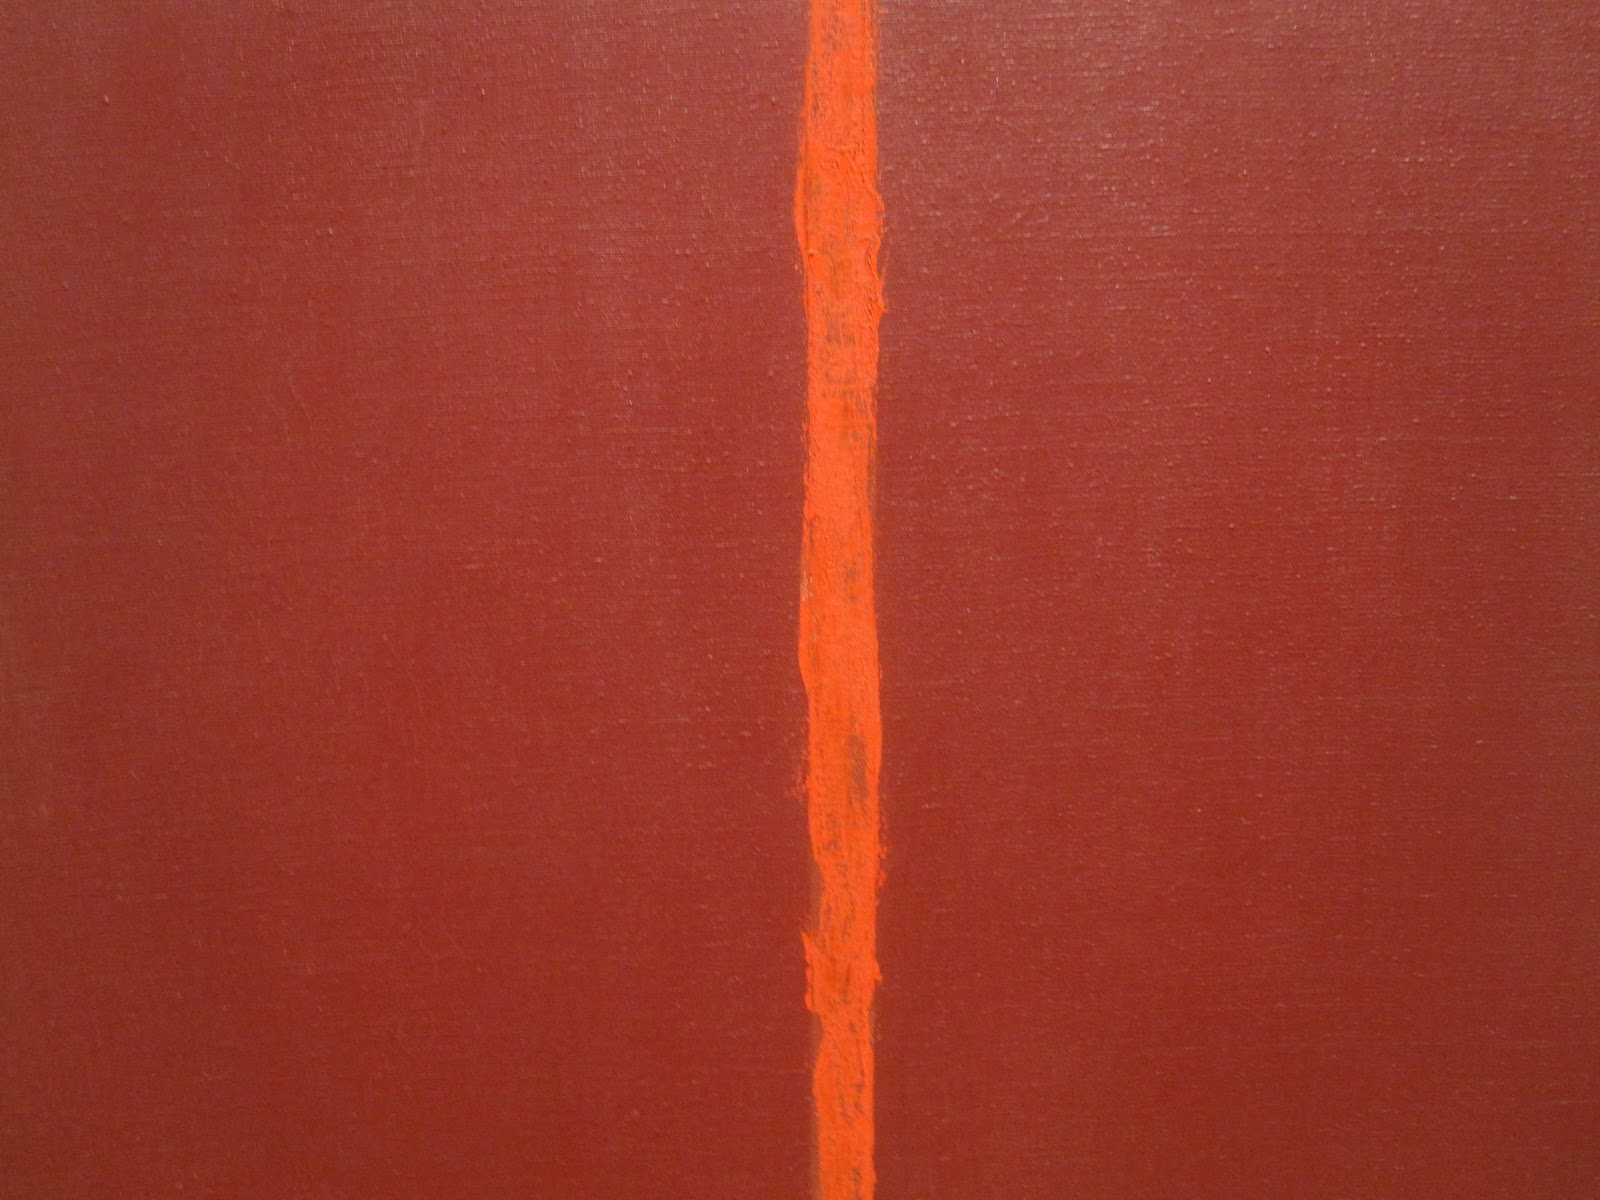 barnet newman Find the latest shows, biography, and artworks for sale by barnett newman an originator of abstract expressionism, barnett newman changed the course of 20th.